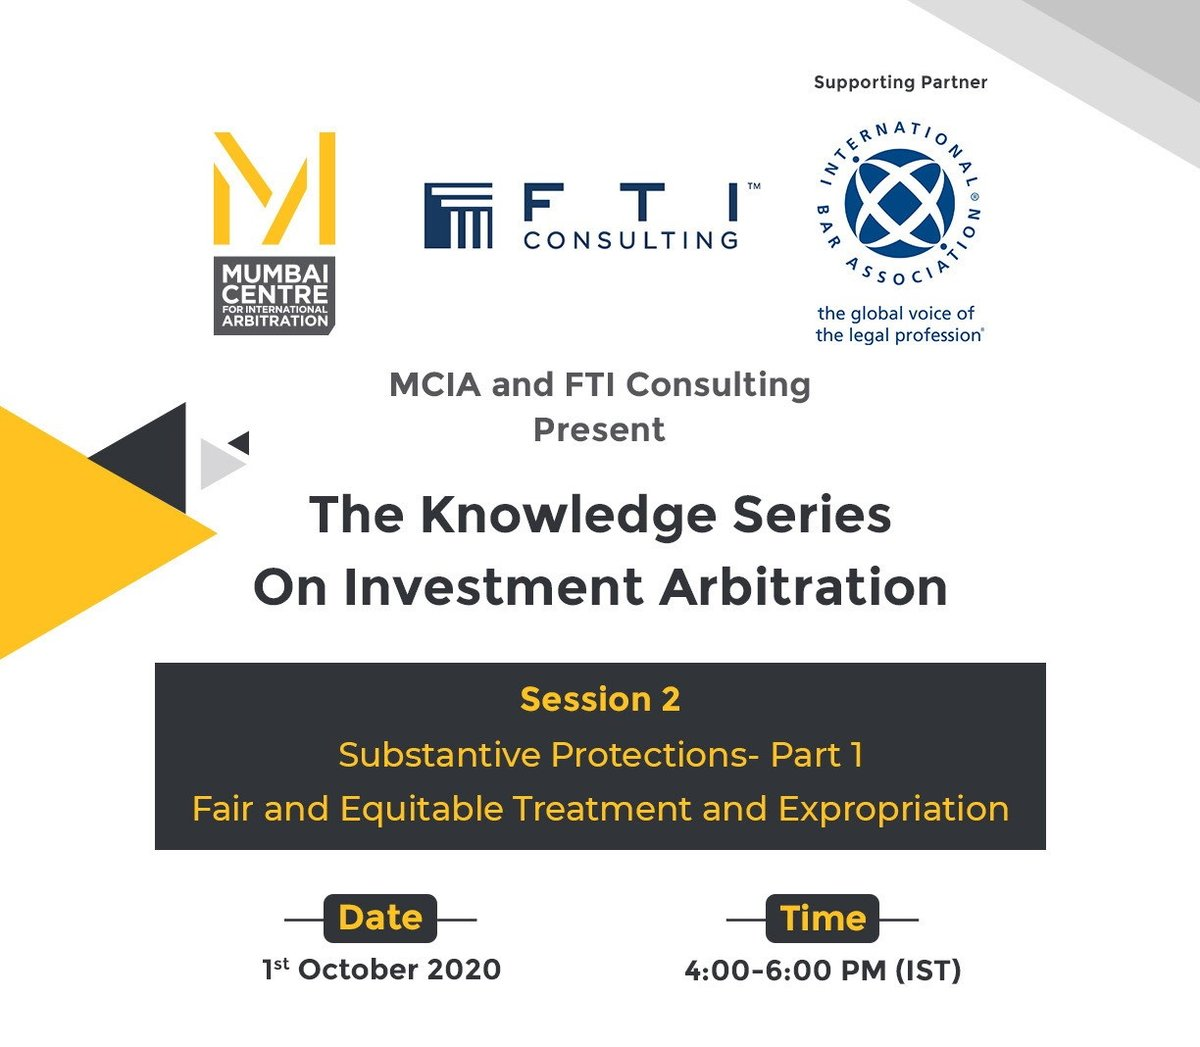 STARTING SOON: Register for the second session of The Knowledge Series on Investment #Arbitration. Substantive Protections- Part 1: 'Fair and Equitable Treatment and Expropriation' will take place on ?️ 1 October ? 11:30-13:30 BST - Register now➡ https://t.co/eoHKk8F0cy #Law https://t.co/A6Q1tF2Xej